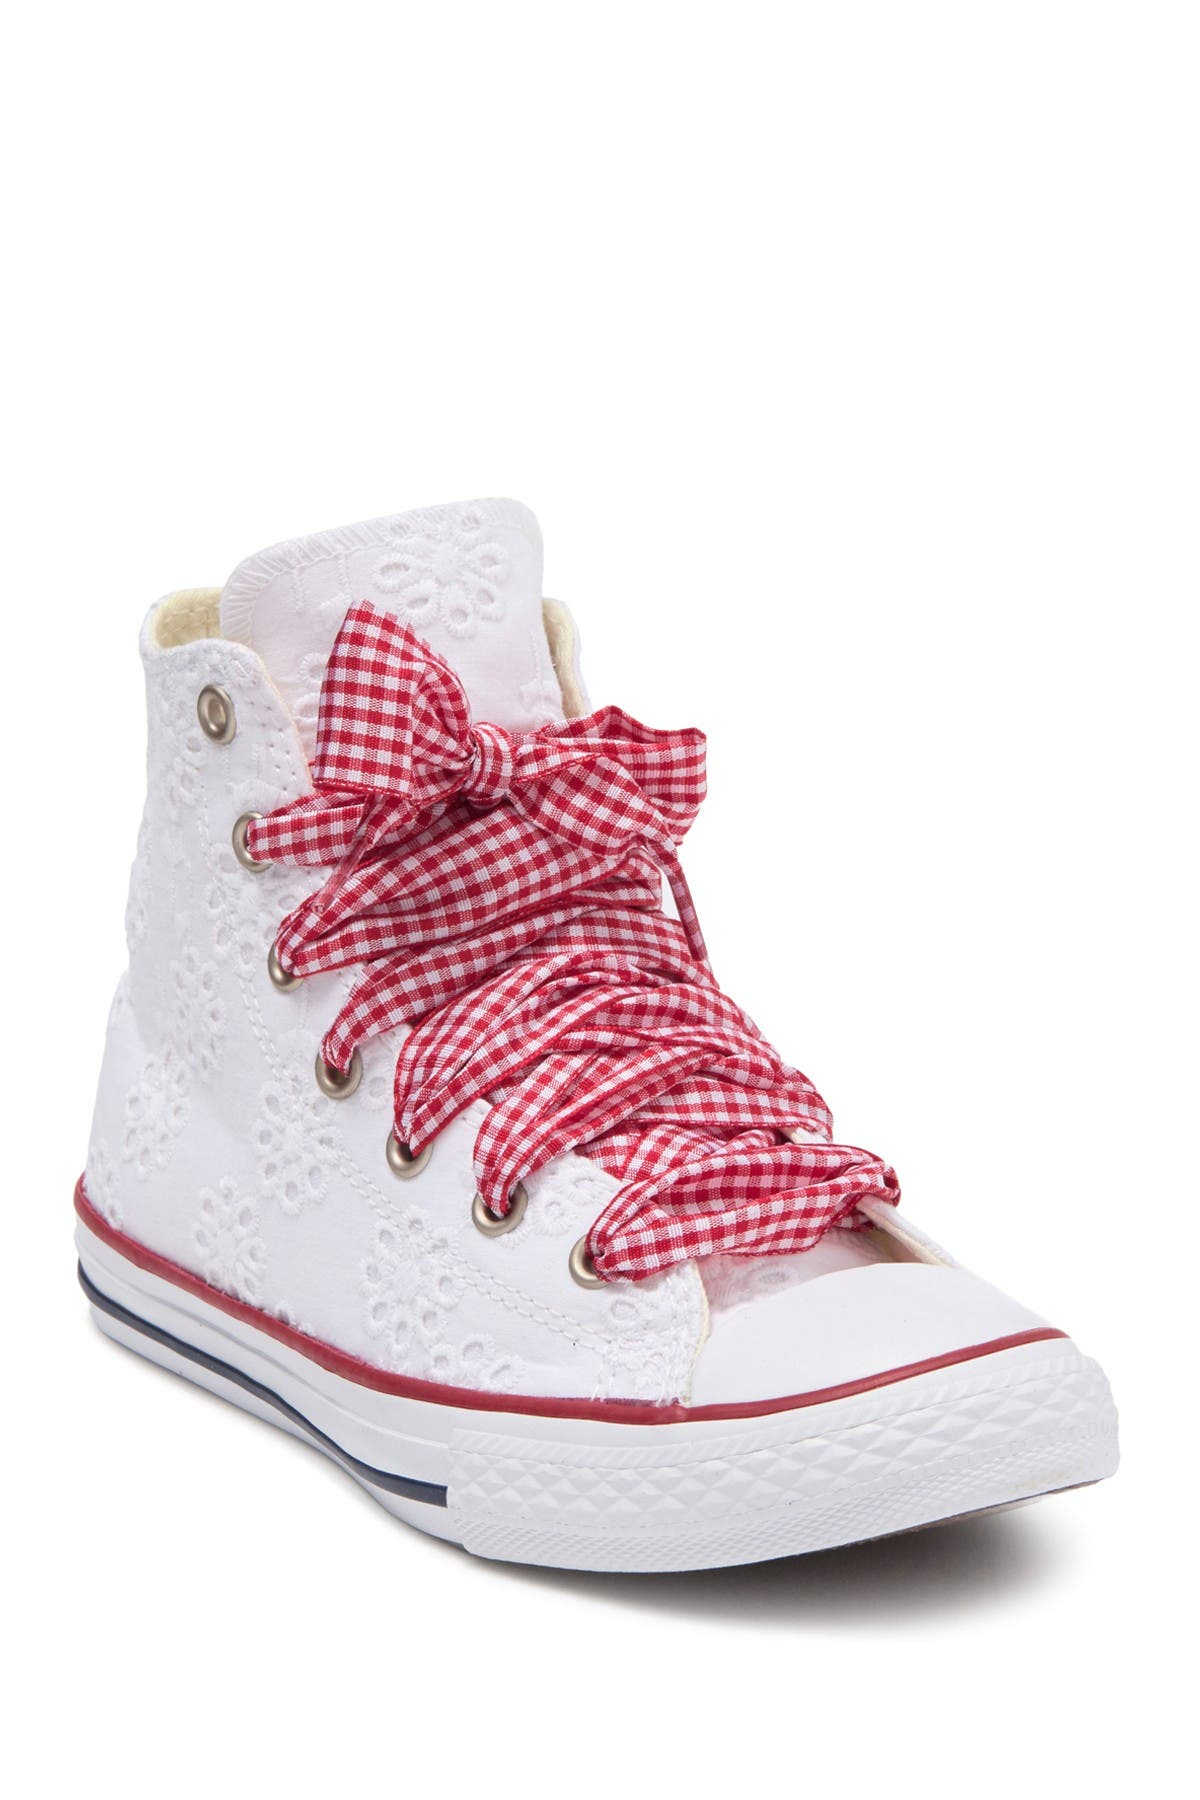 Image of Converse Chuck Taylor All-Star Embroidered High Top Sneaker